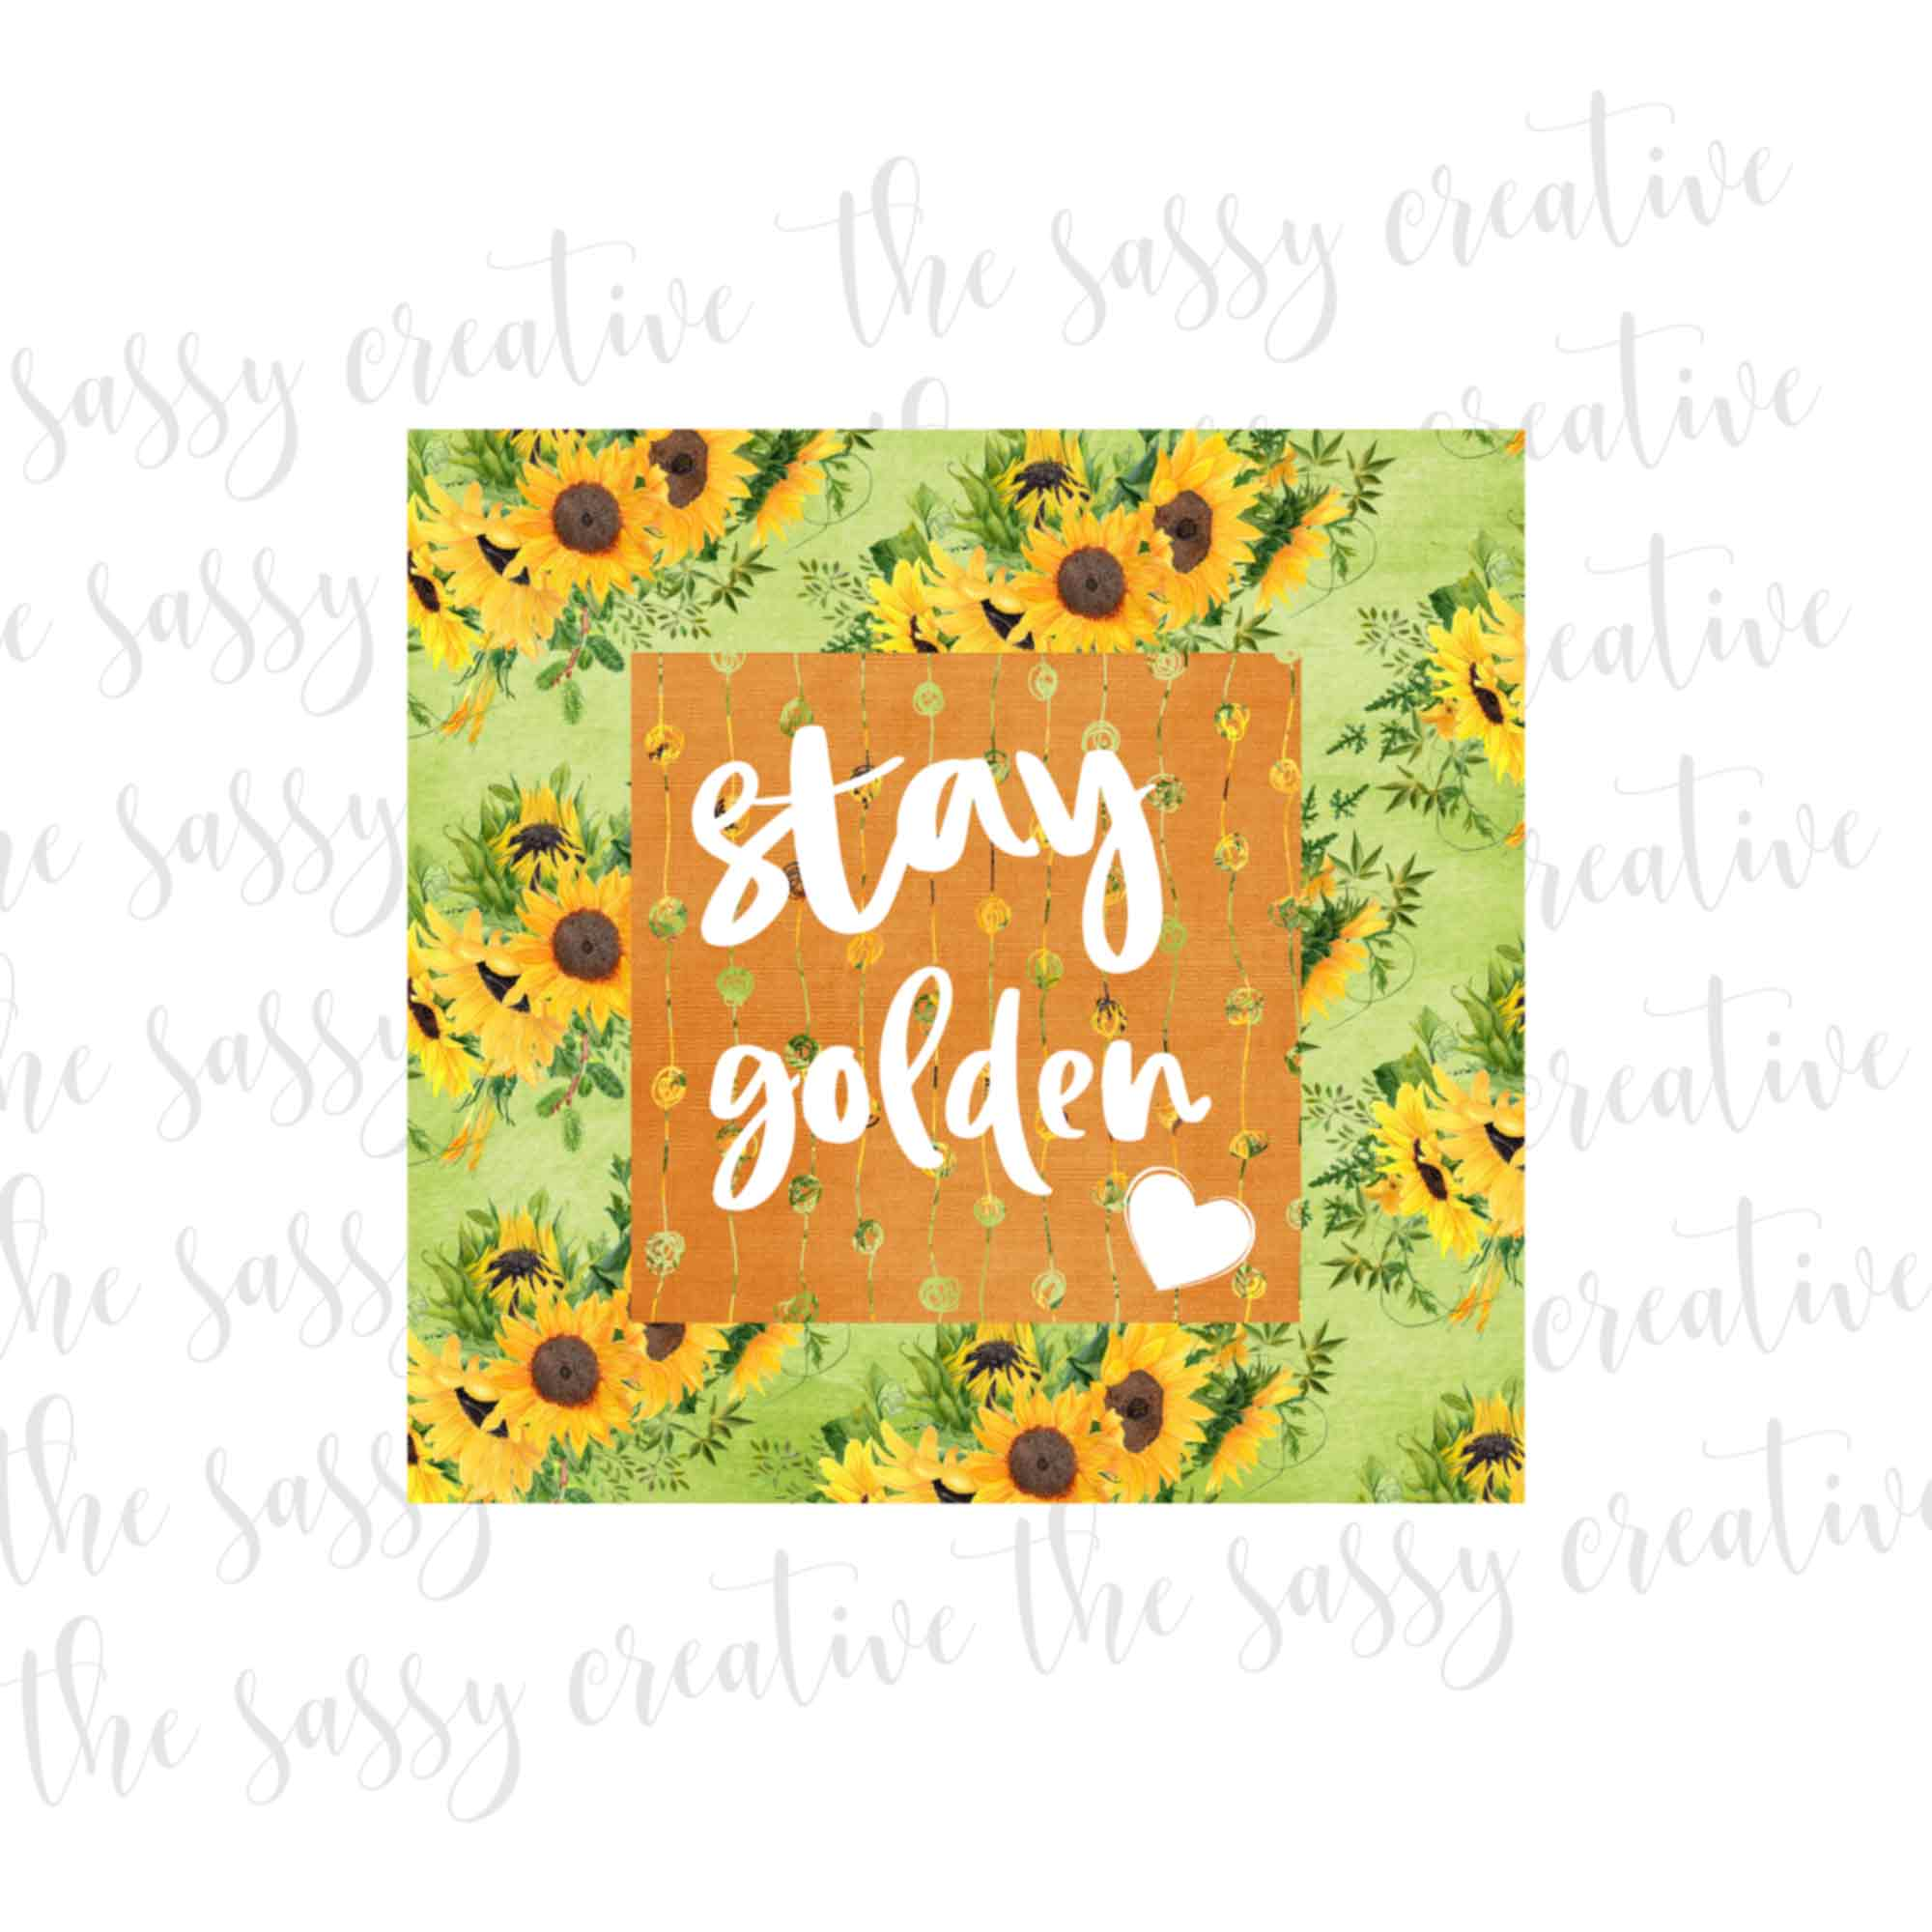 staygoldencover